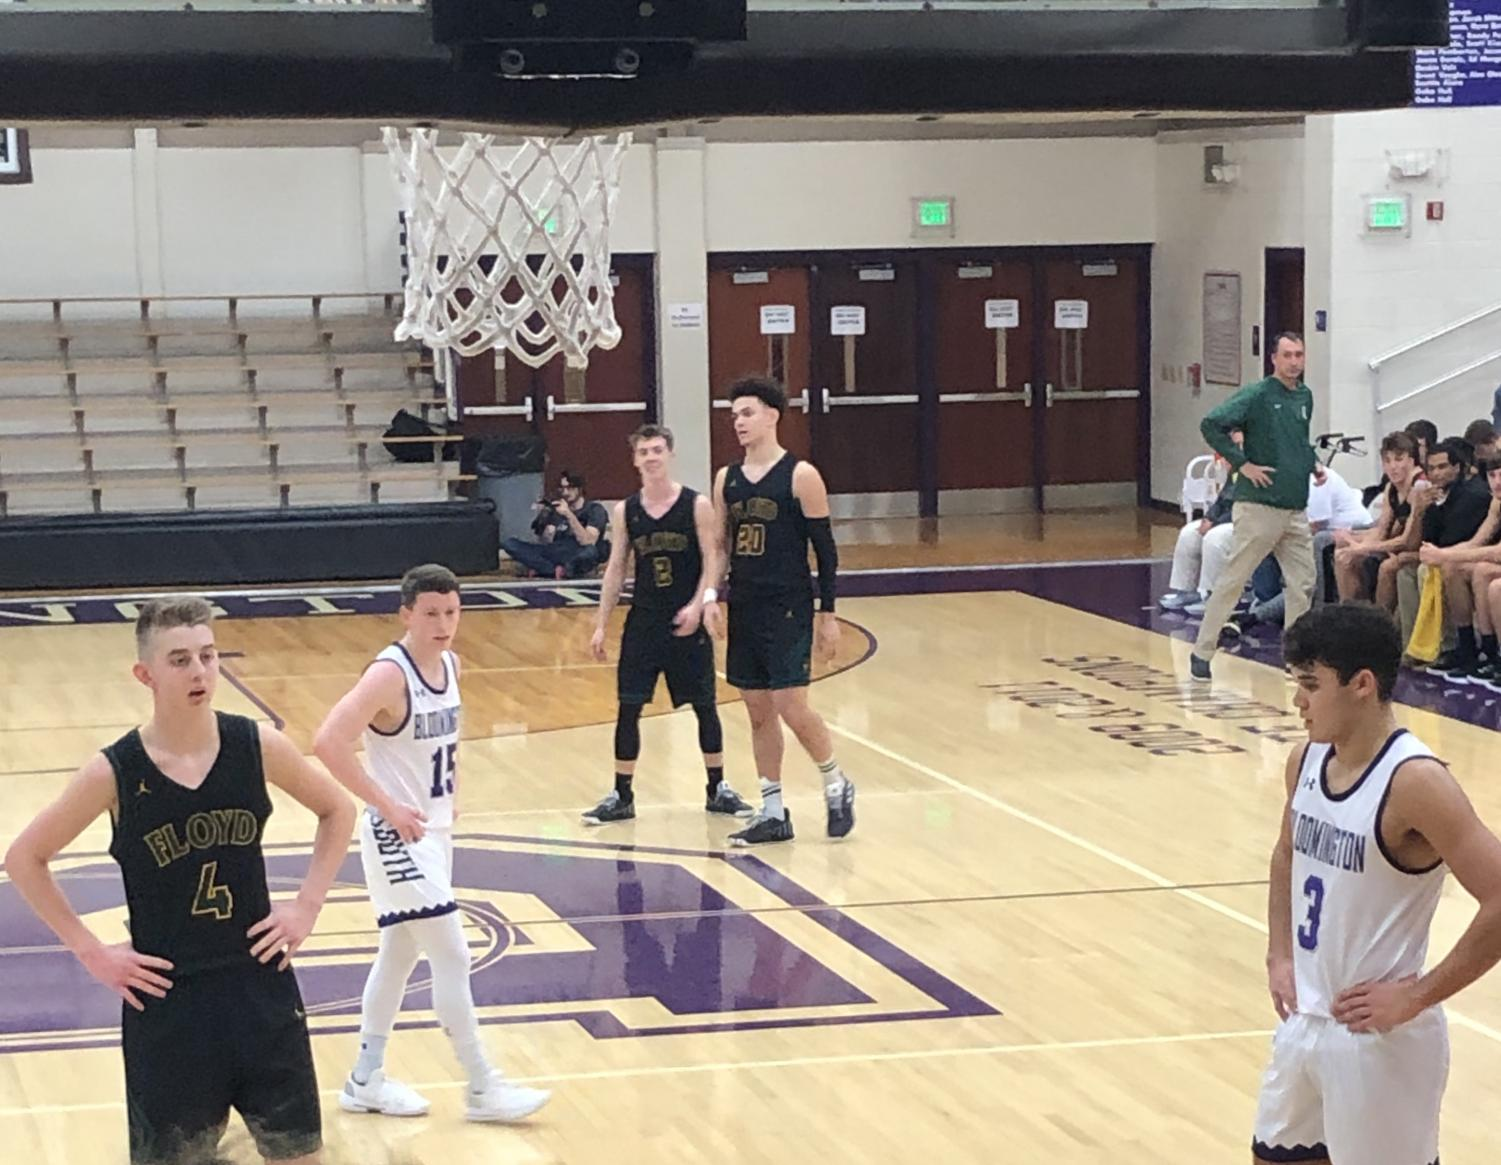 South's Noah Jager (15) and Anthony Leal (3) look on as Floyd Central's Jake Heidbreder (4) prepares to shoot a free throw